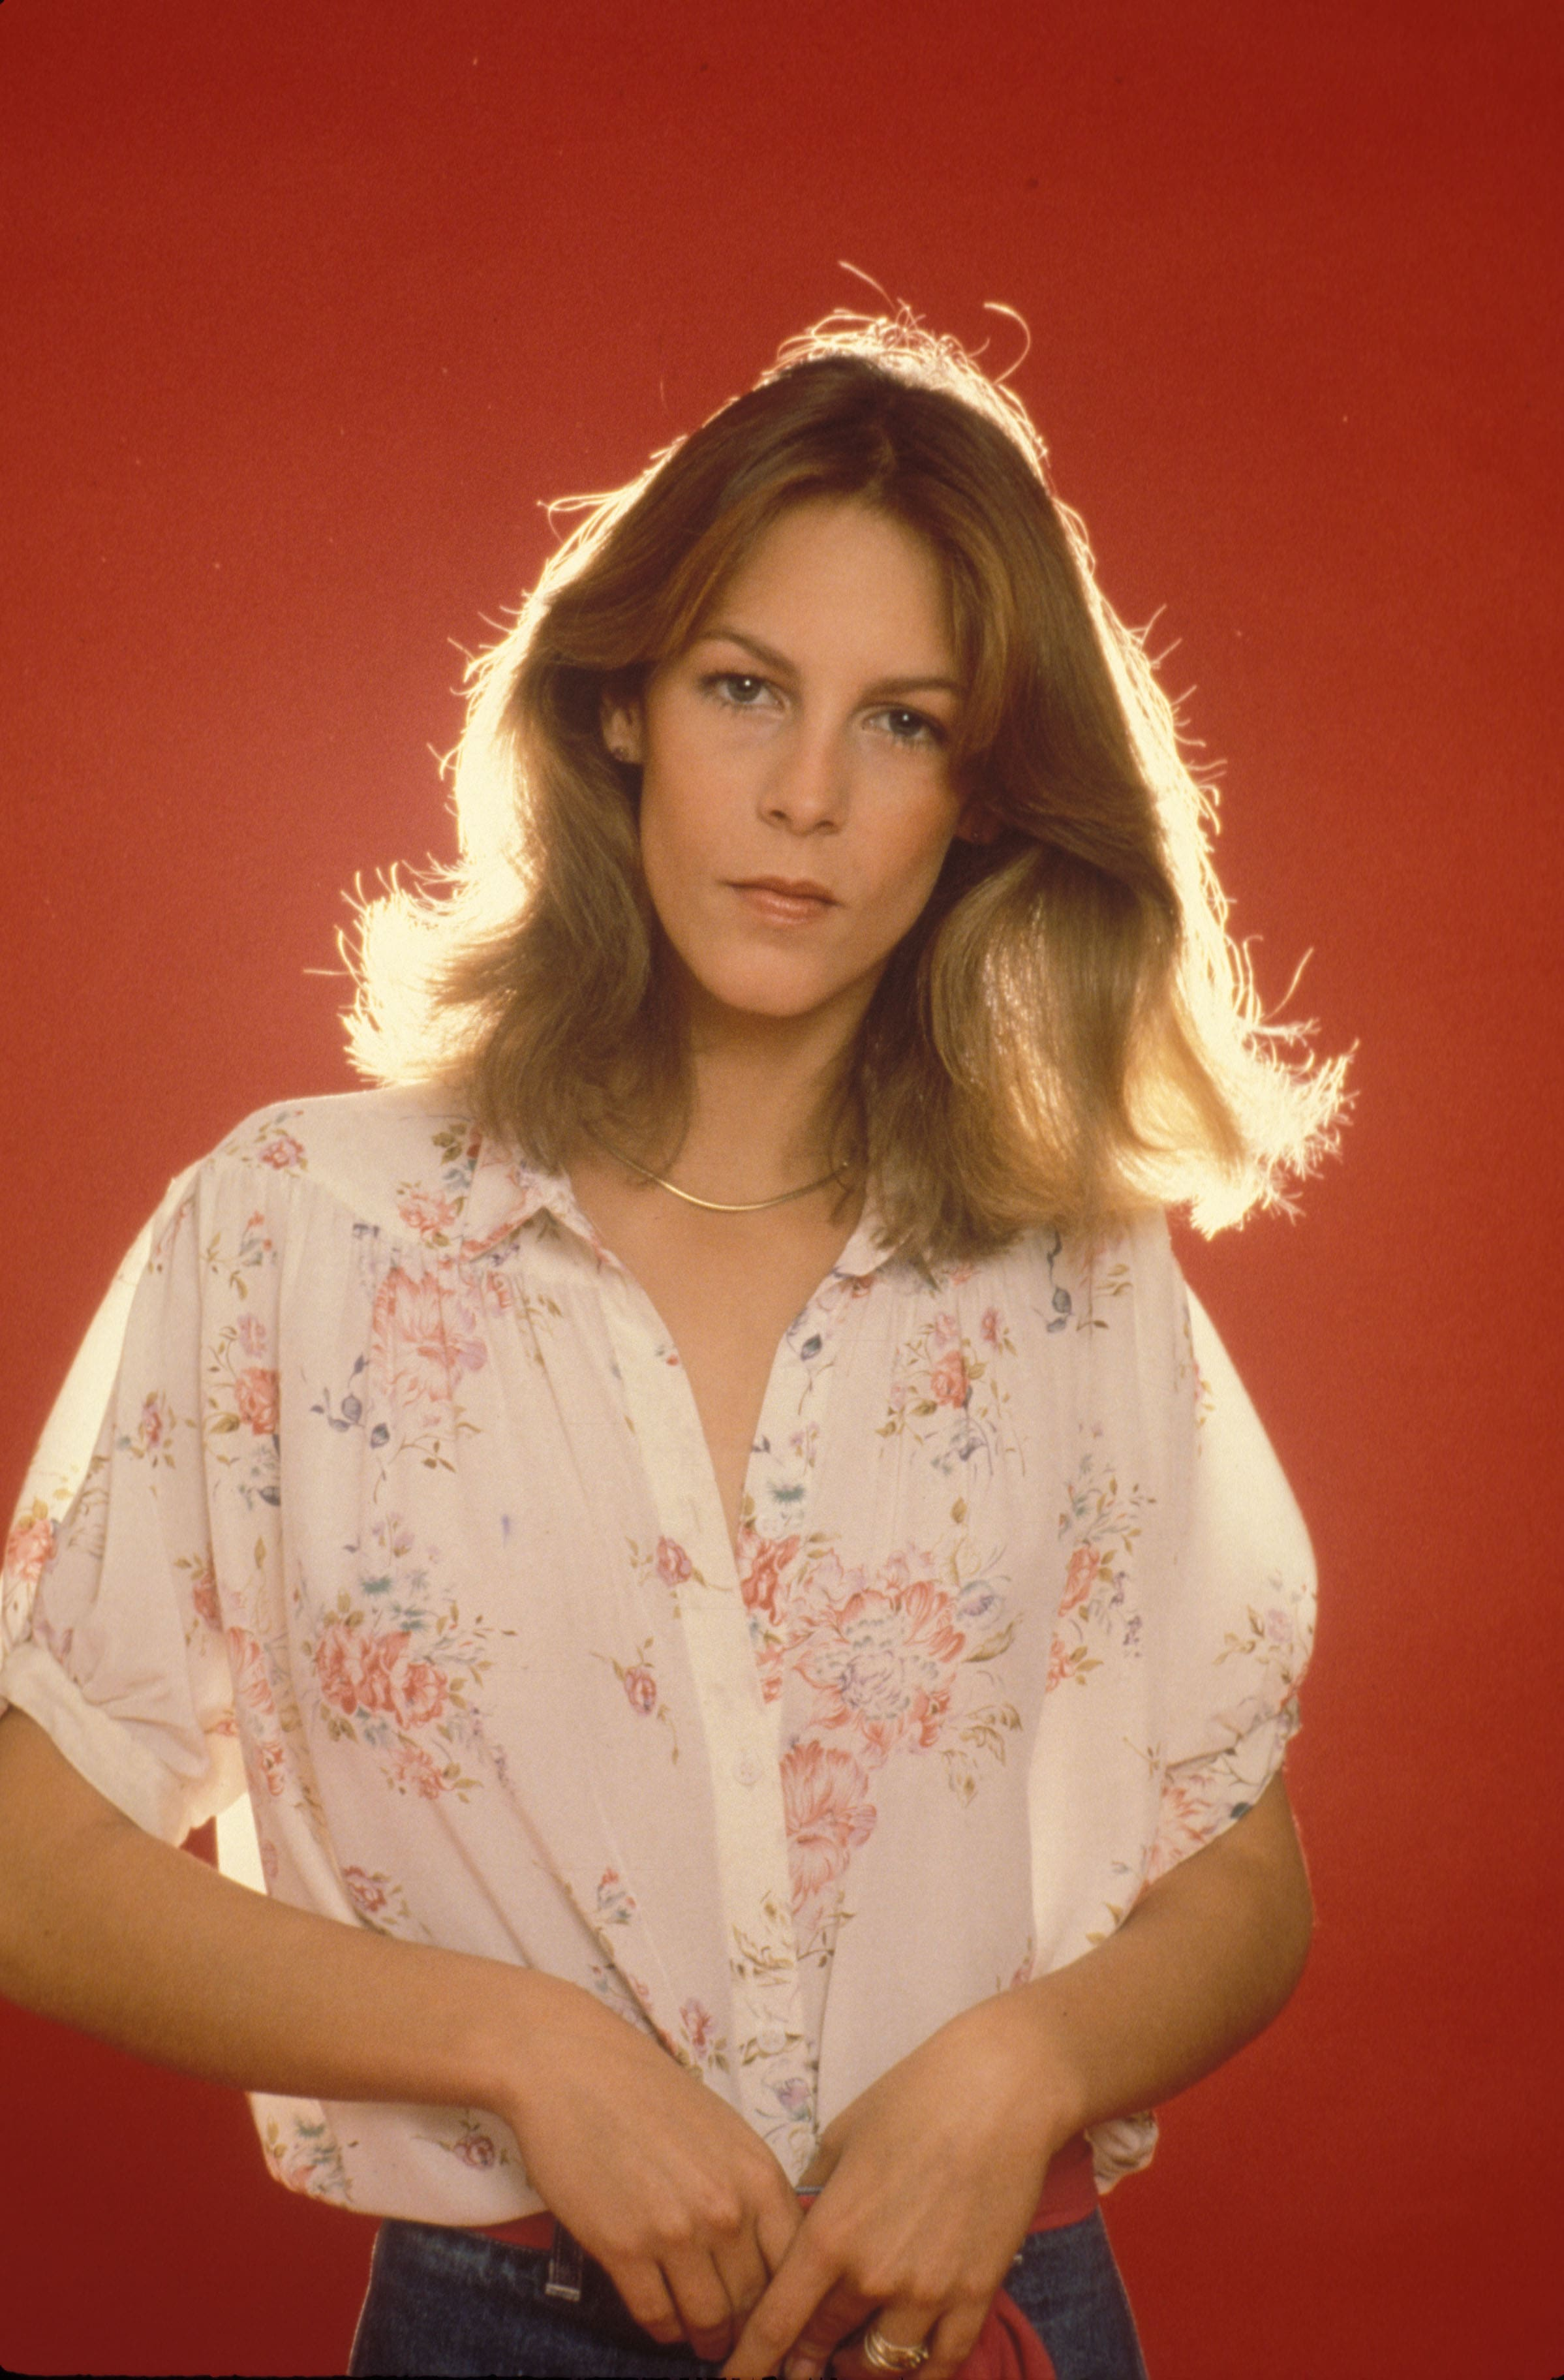 49 Hot Pictures Of Jamie Lee Curtis - The Sexy Halloween Queen